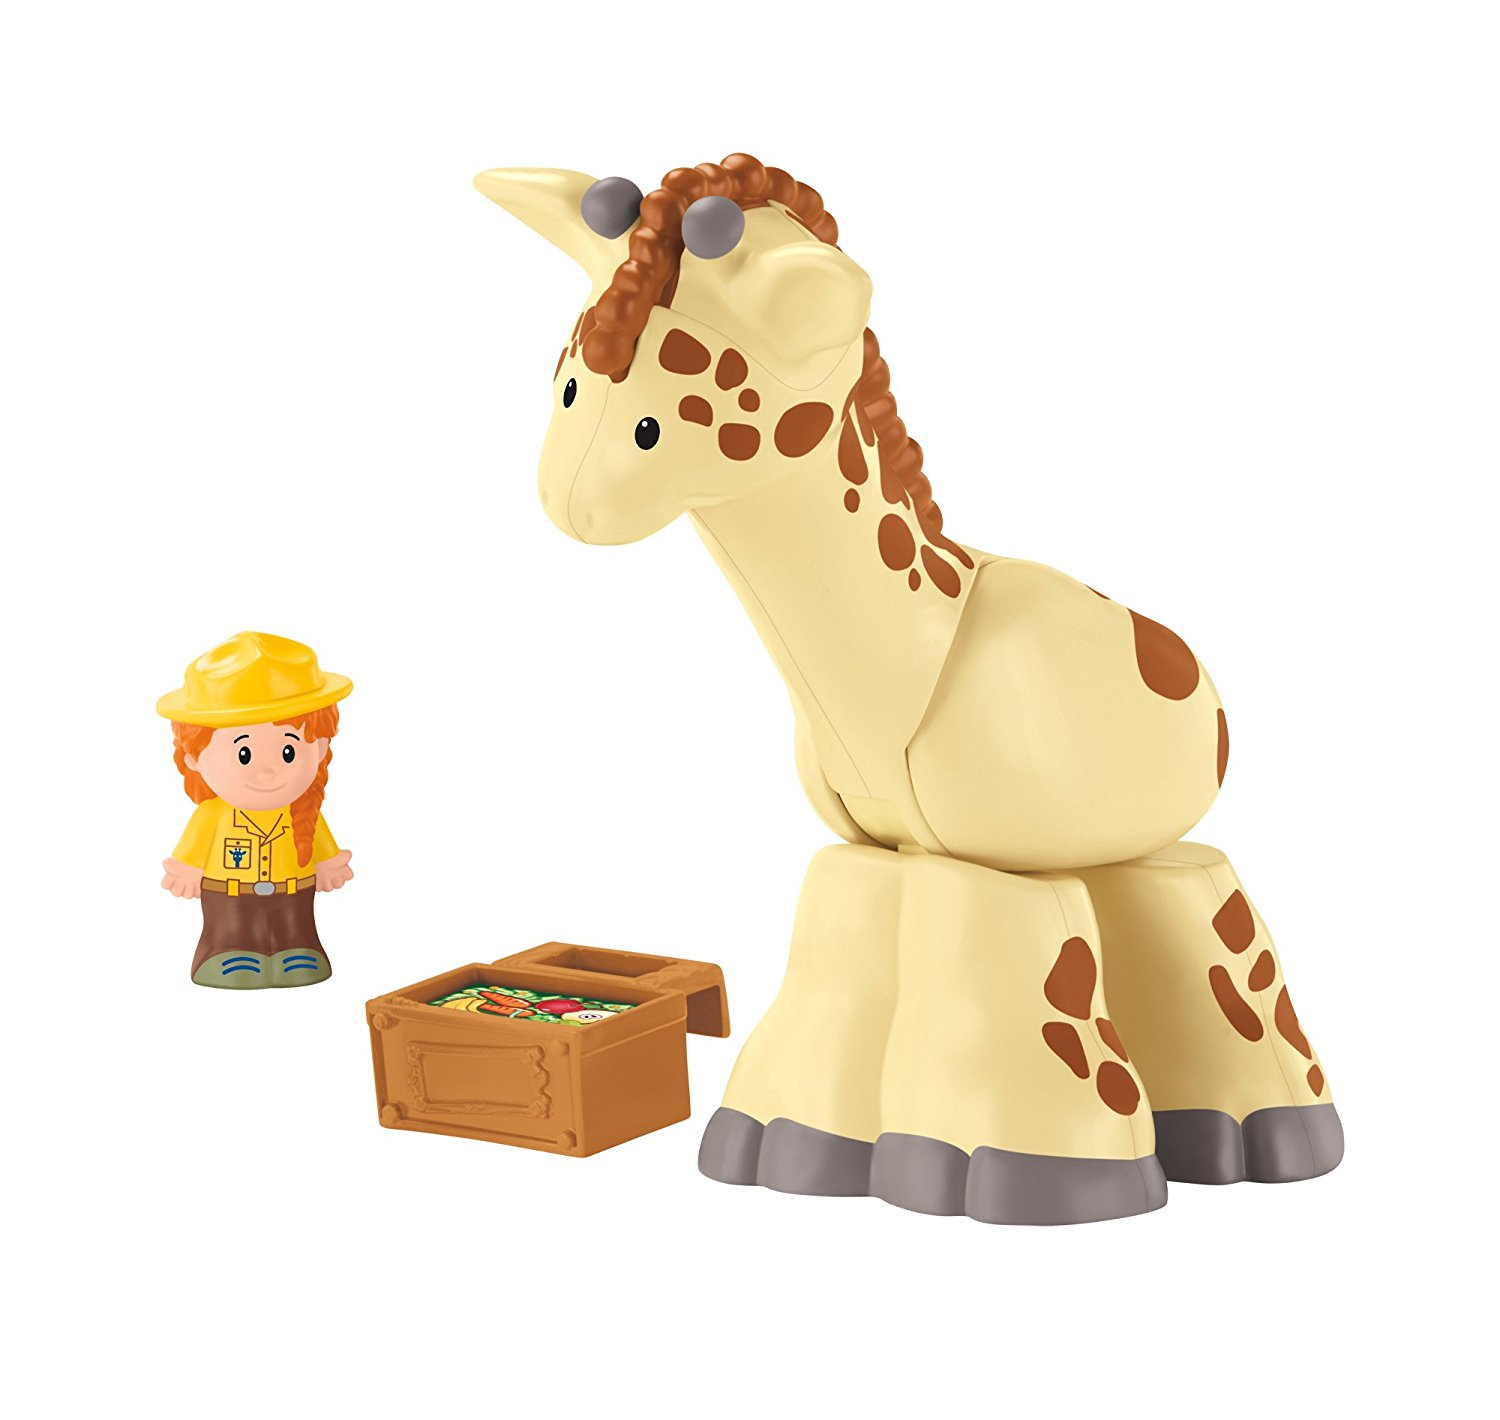 Fisher-Price Little PeopleGiraffe, Bows his head to eat-just like a real giraffe! By FisherPrice Ship from US